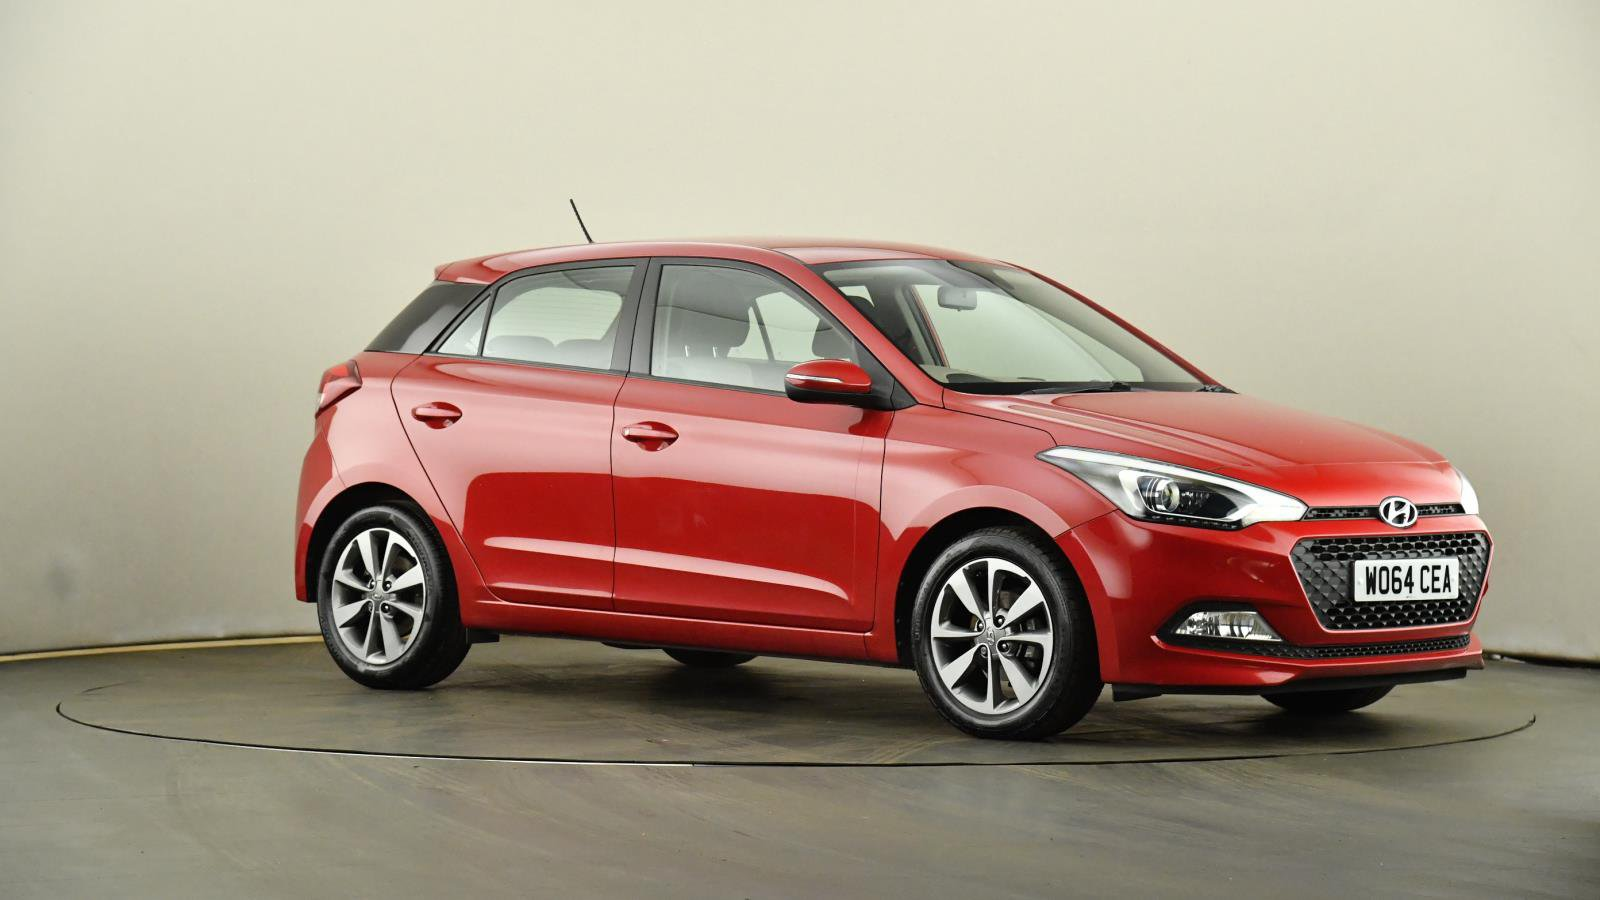 Used HYUNDAI I20 1 4 SE 5dr | Red | WO64CEA | Norwich